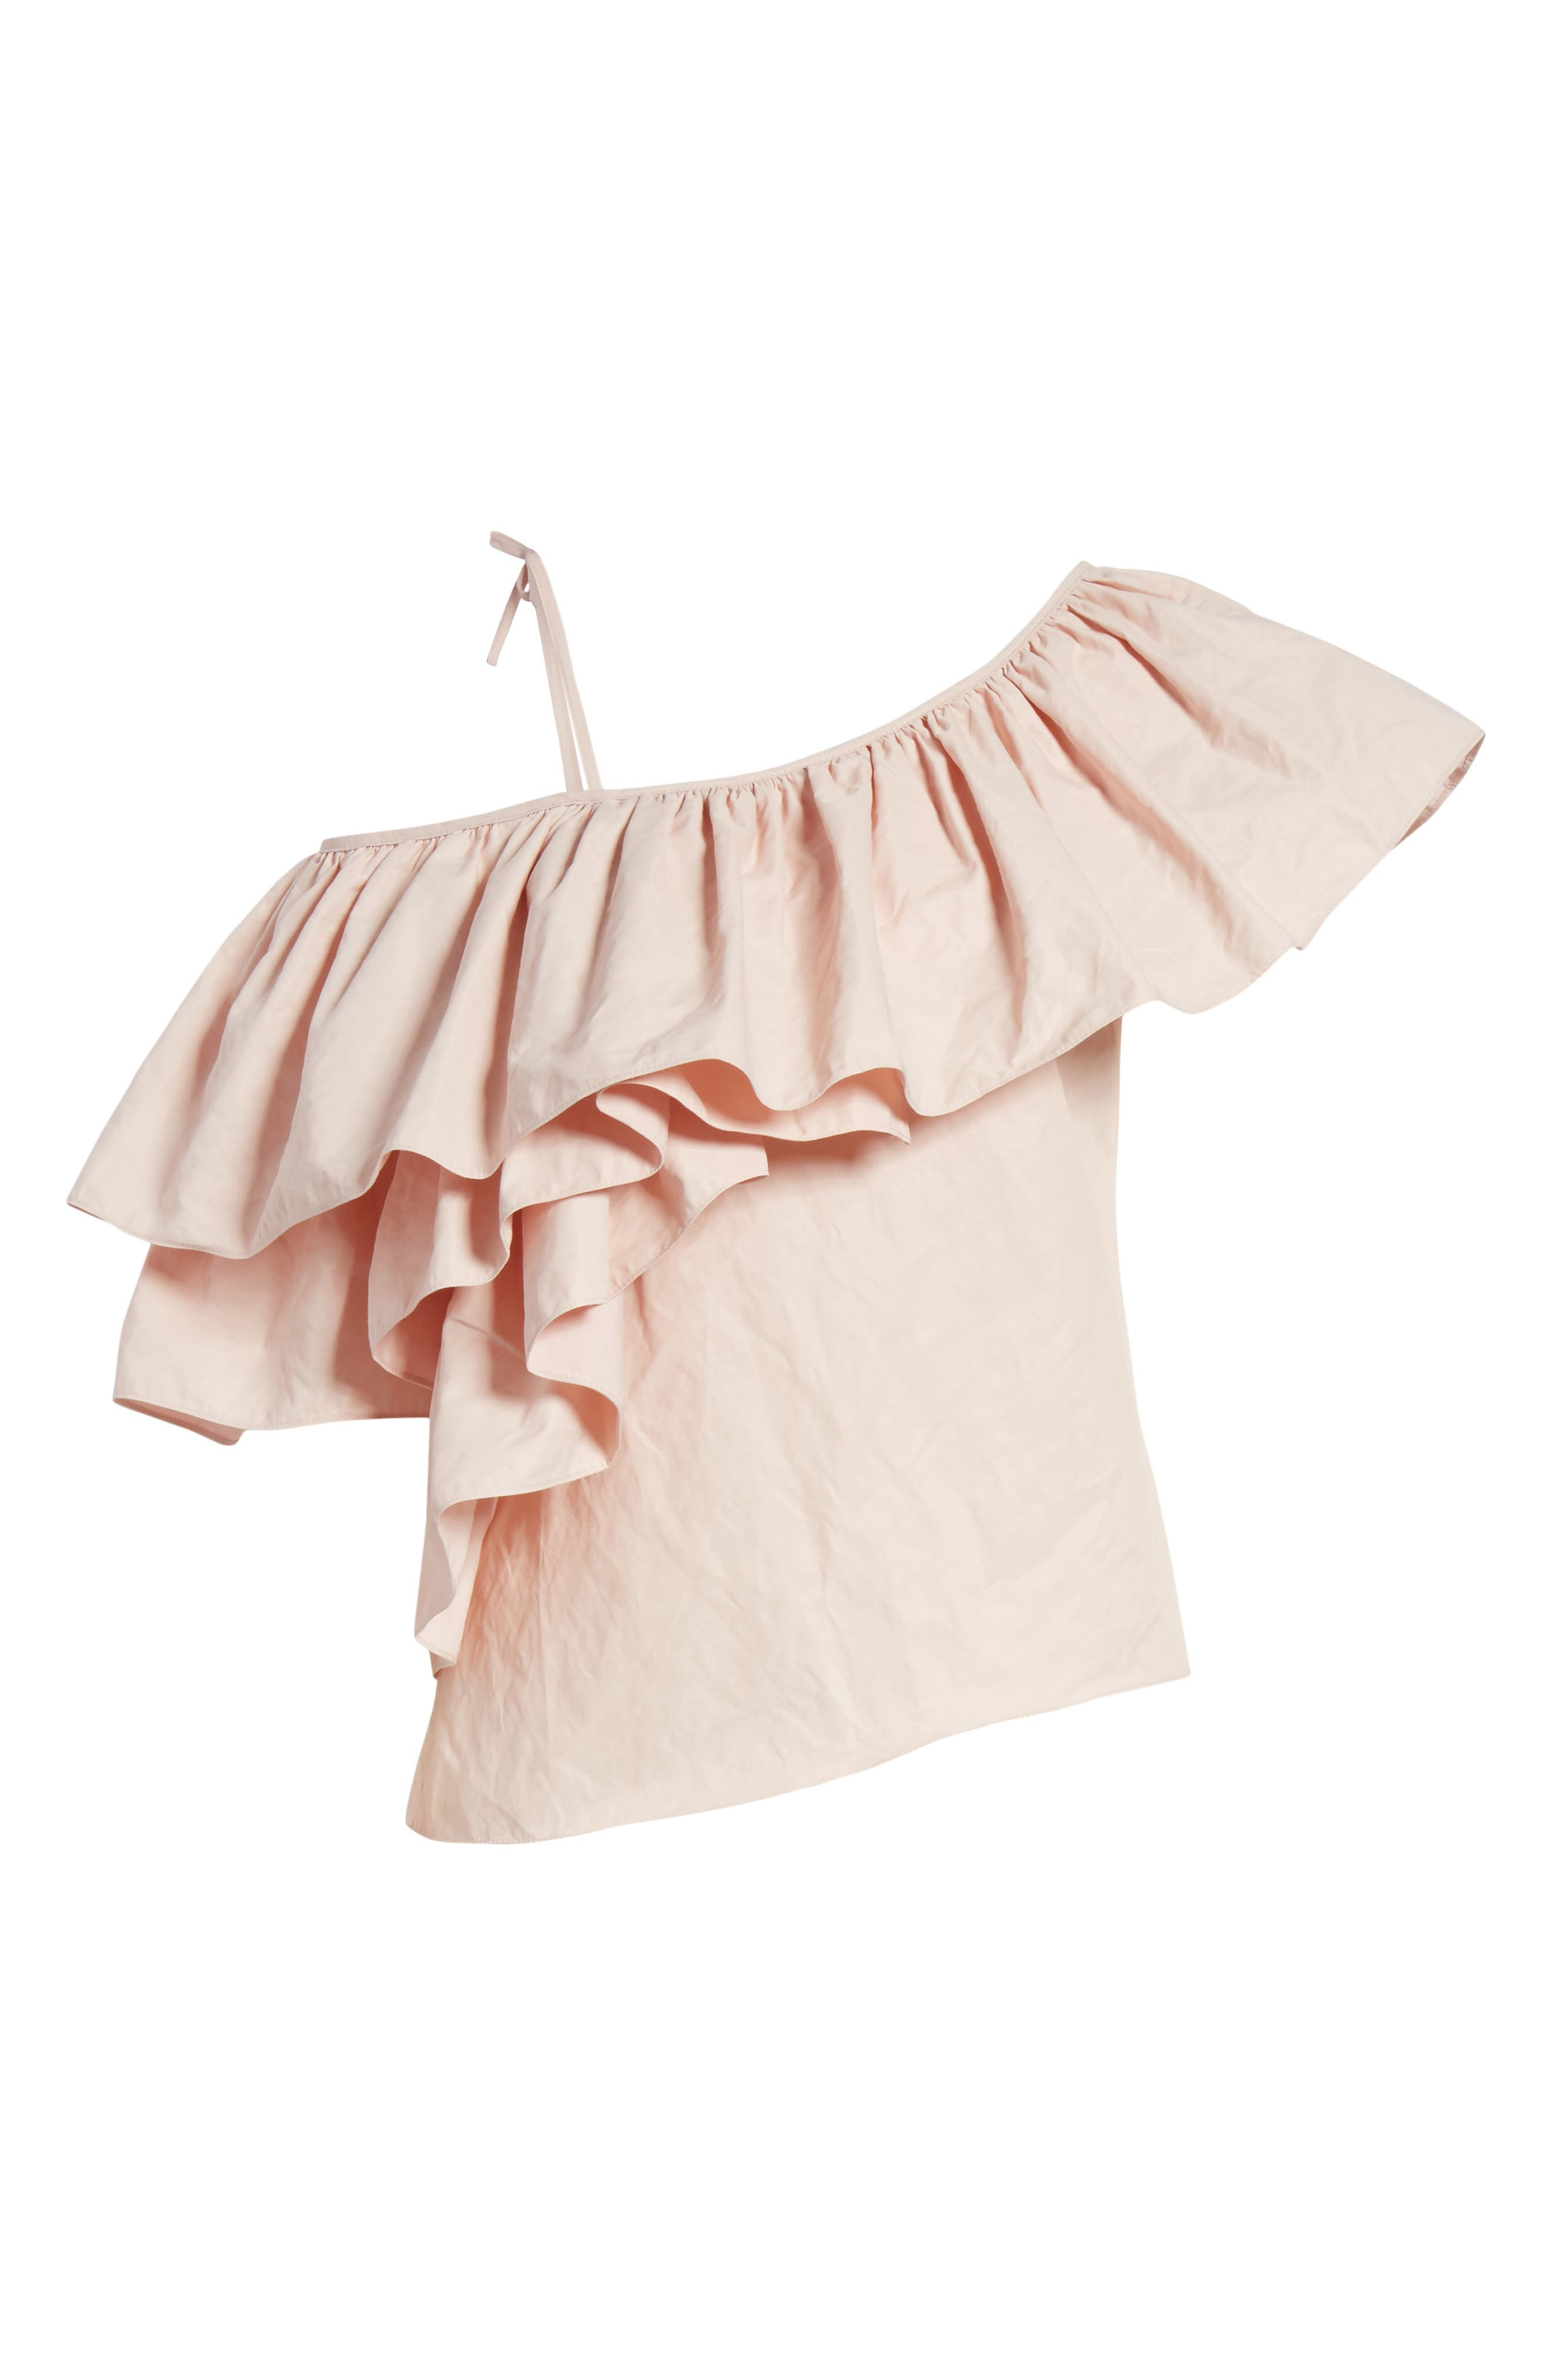 Marques'Almeida One Shoulder Ruffle Top,                             Alternate thumbnail 6, color,                             Pale Pink